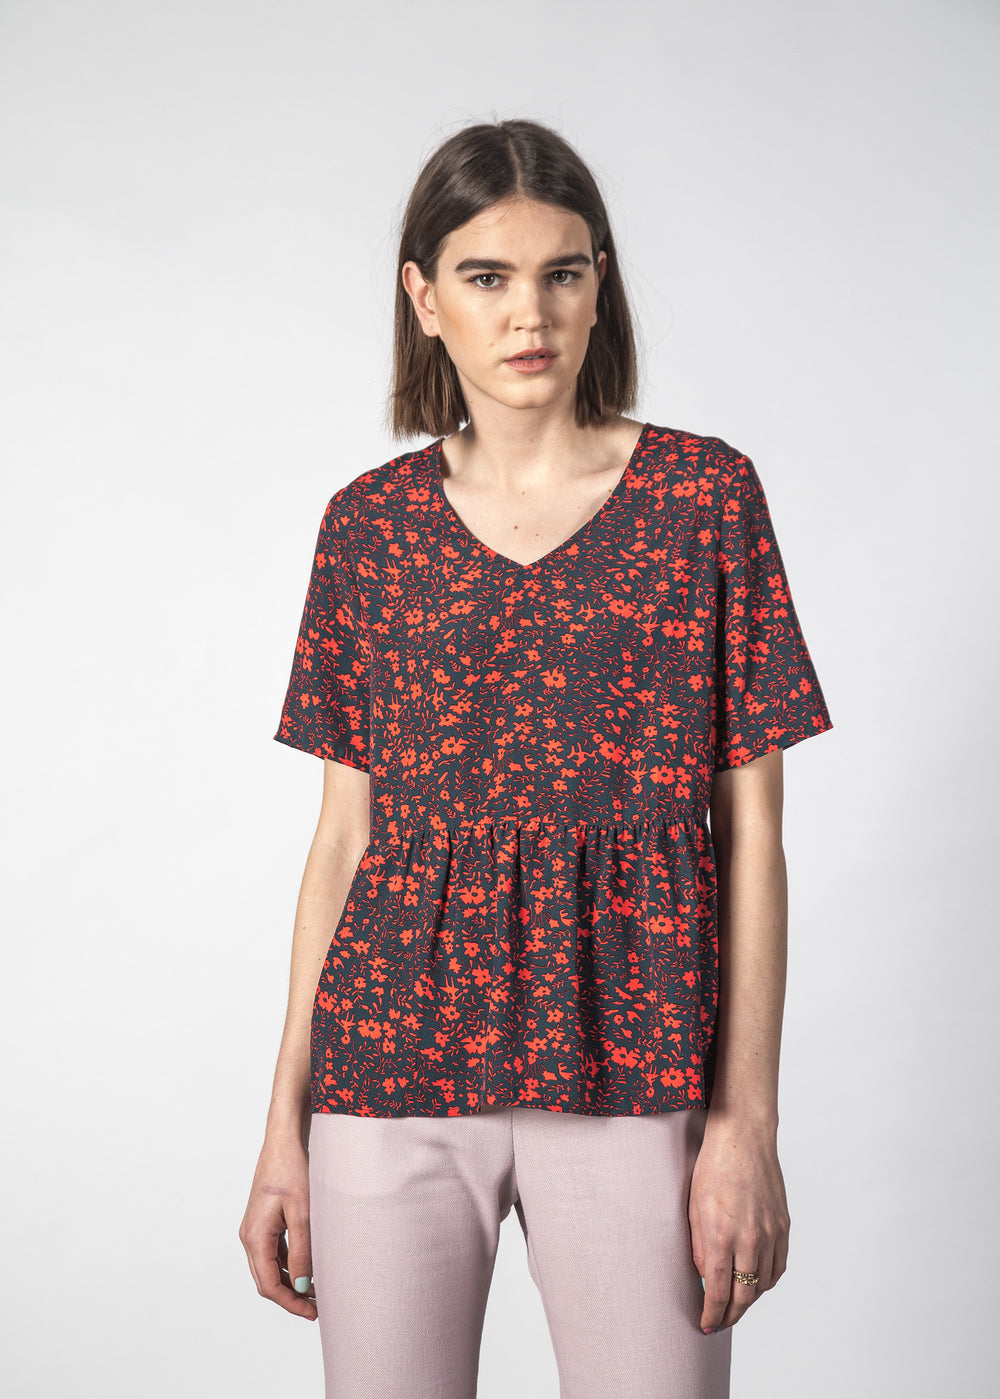 HOLLY TOP GLOWING FLORAL